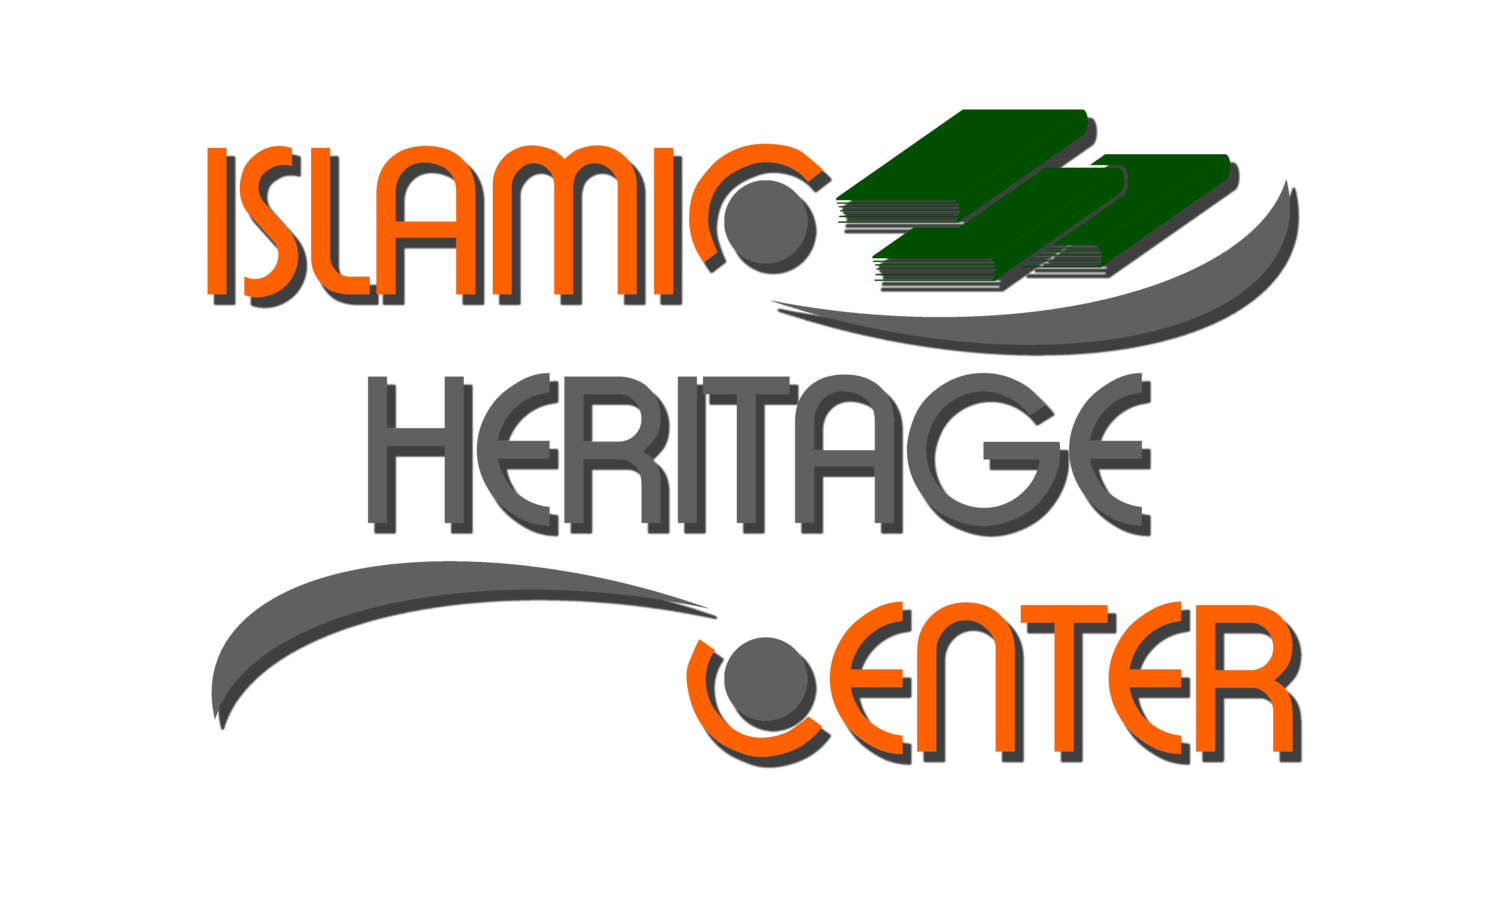 Islamic Heritage Center